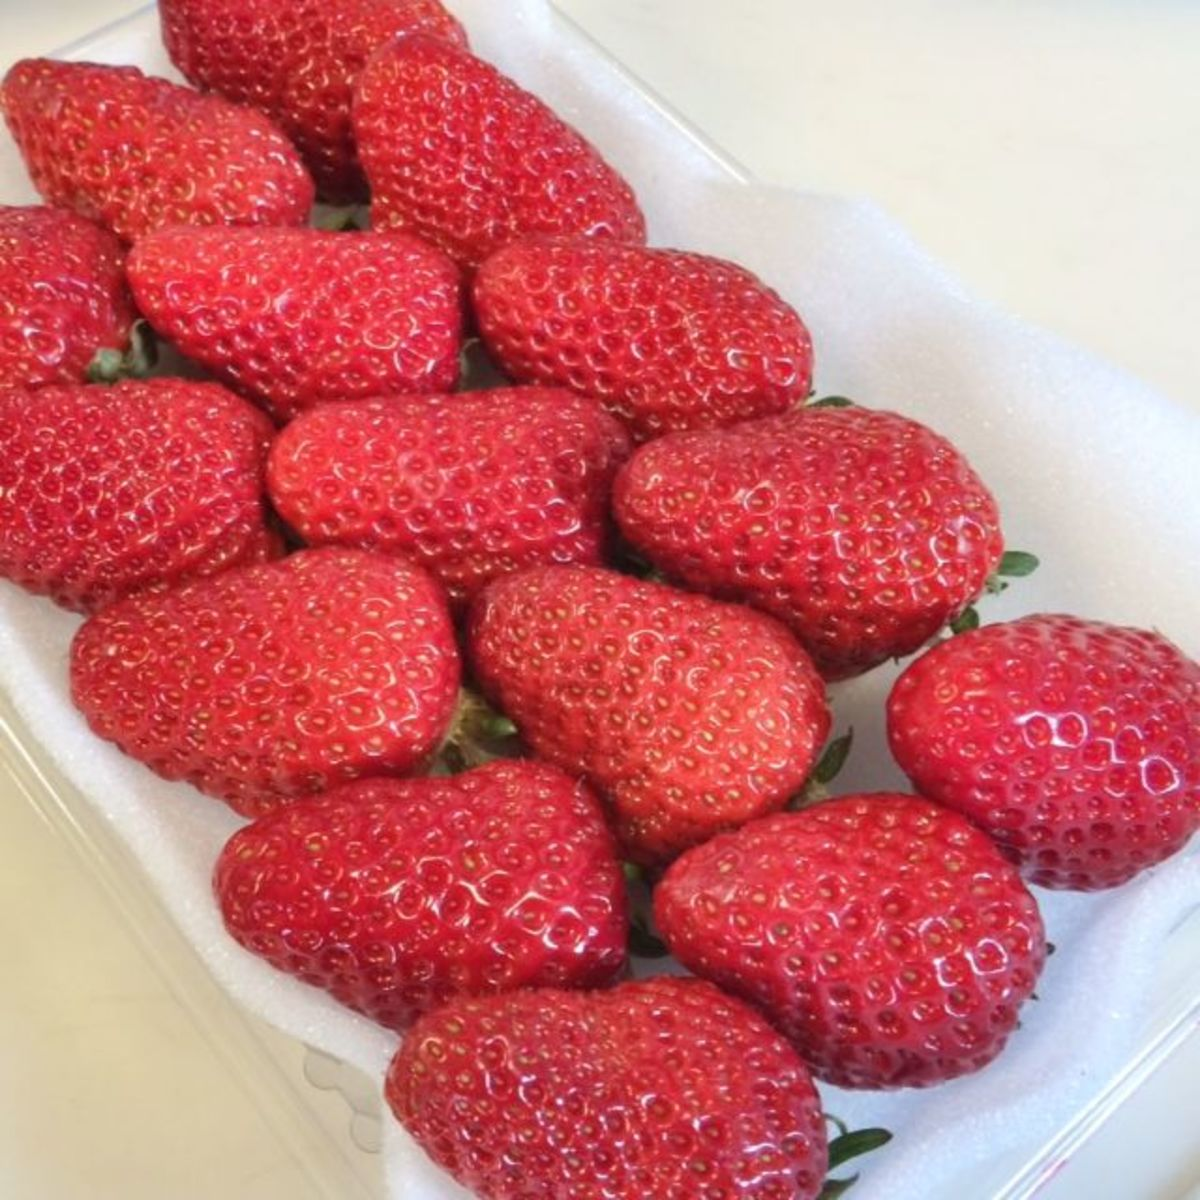 Fresh strawberries are perfect to accompany the cake.